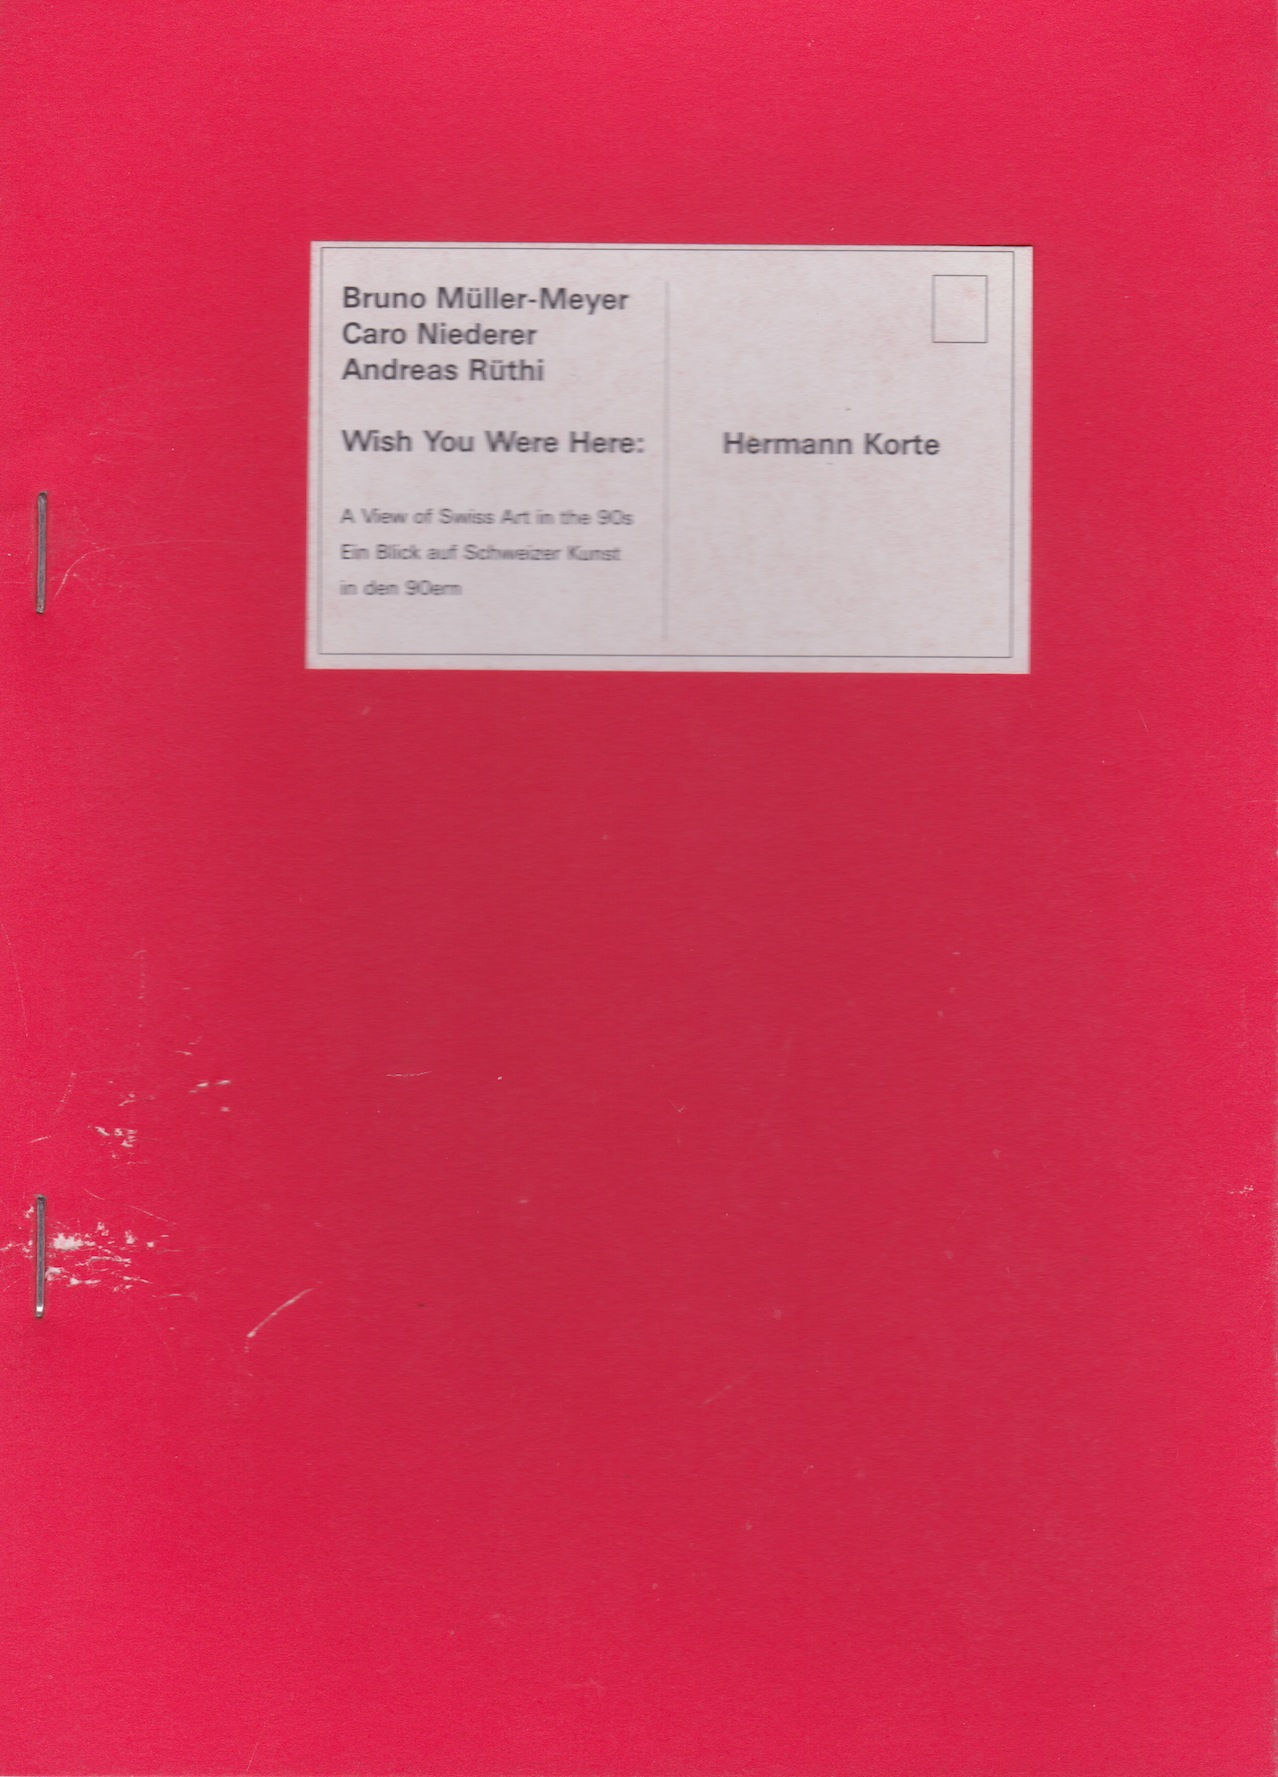 Wish You Were Here        Milch, London   1998  With Caro Niederer and Bruno Müller-Meyer  Text by Hermann Korte